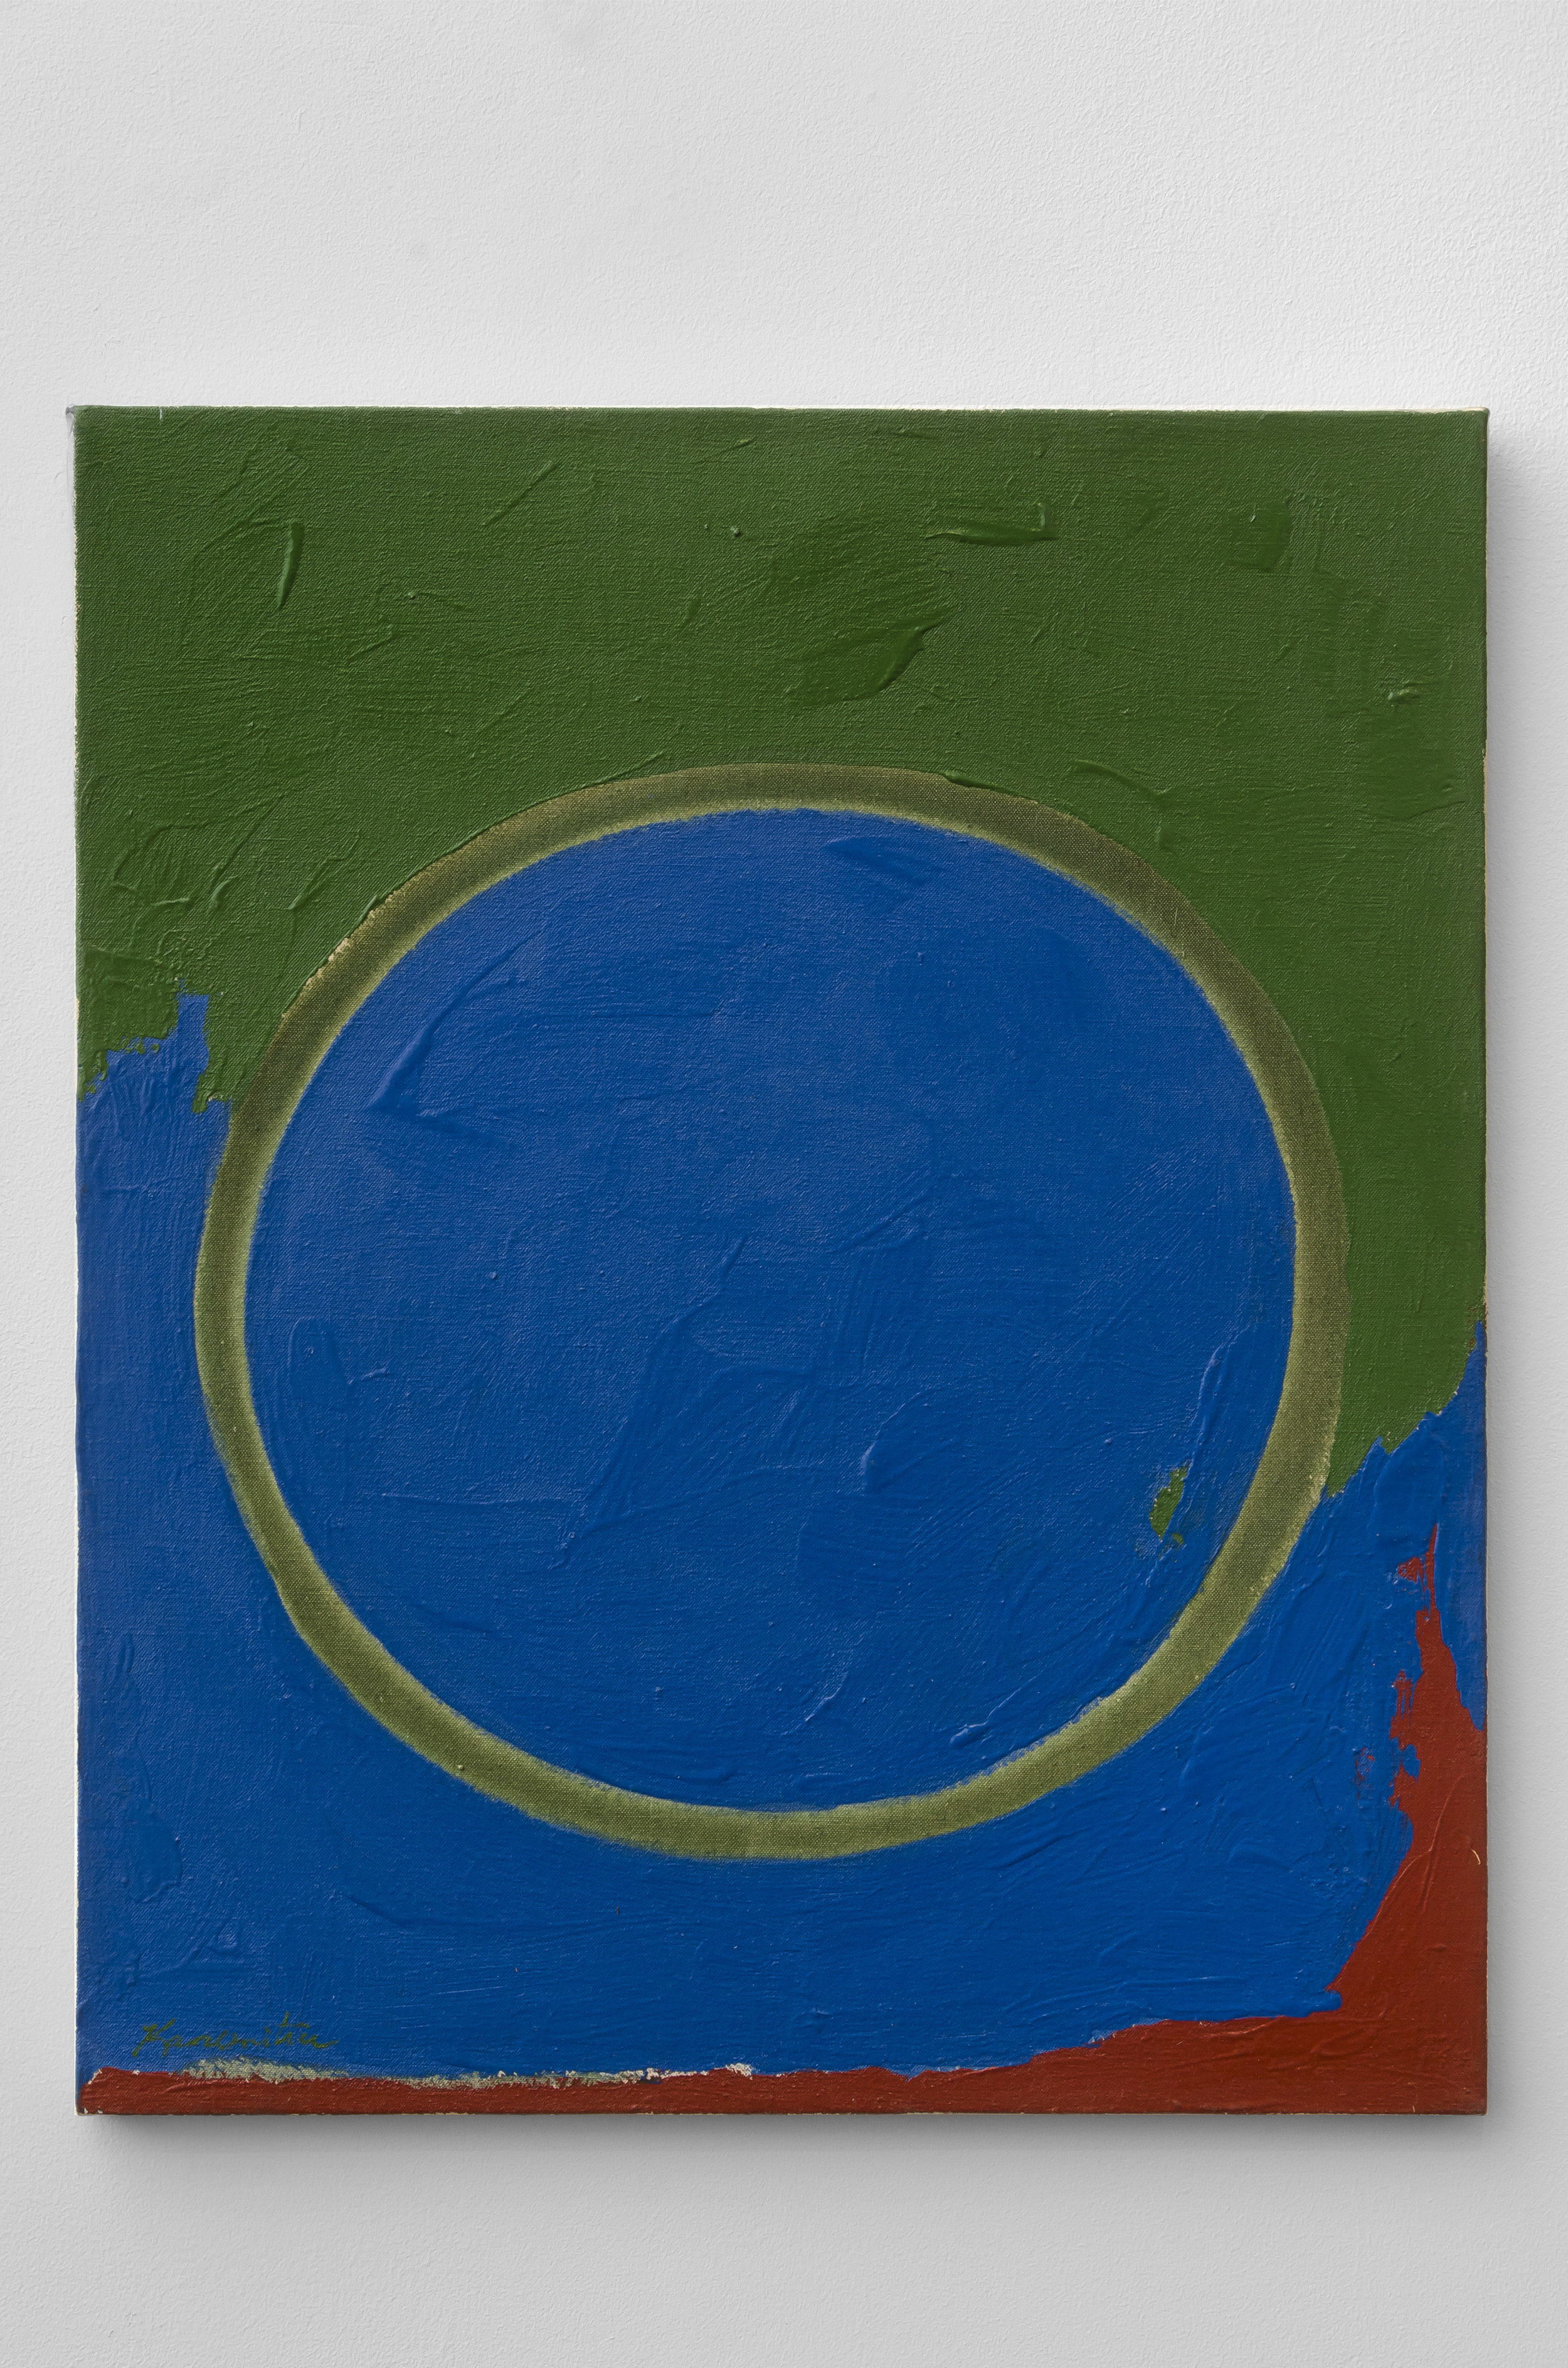 Opening   1962  acrylic on canvas  24 x 20 inches, 61 x 76.2 centimeters